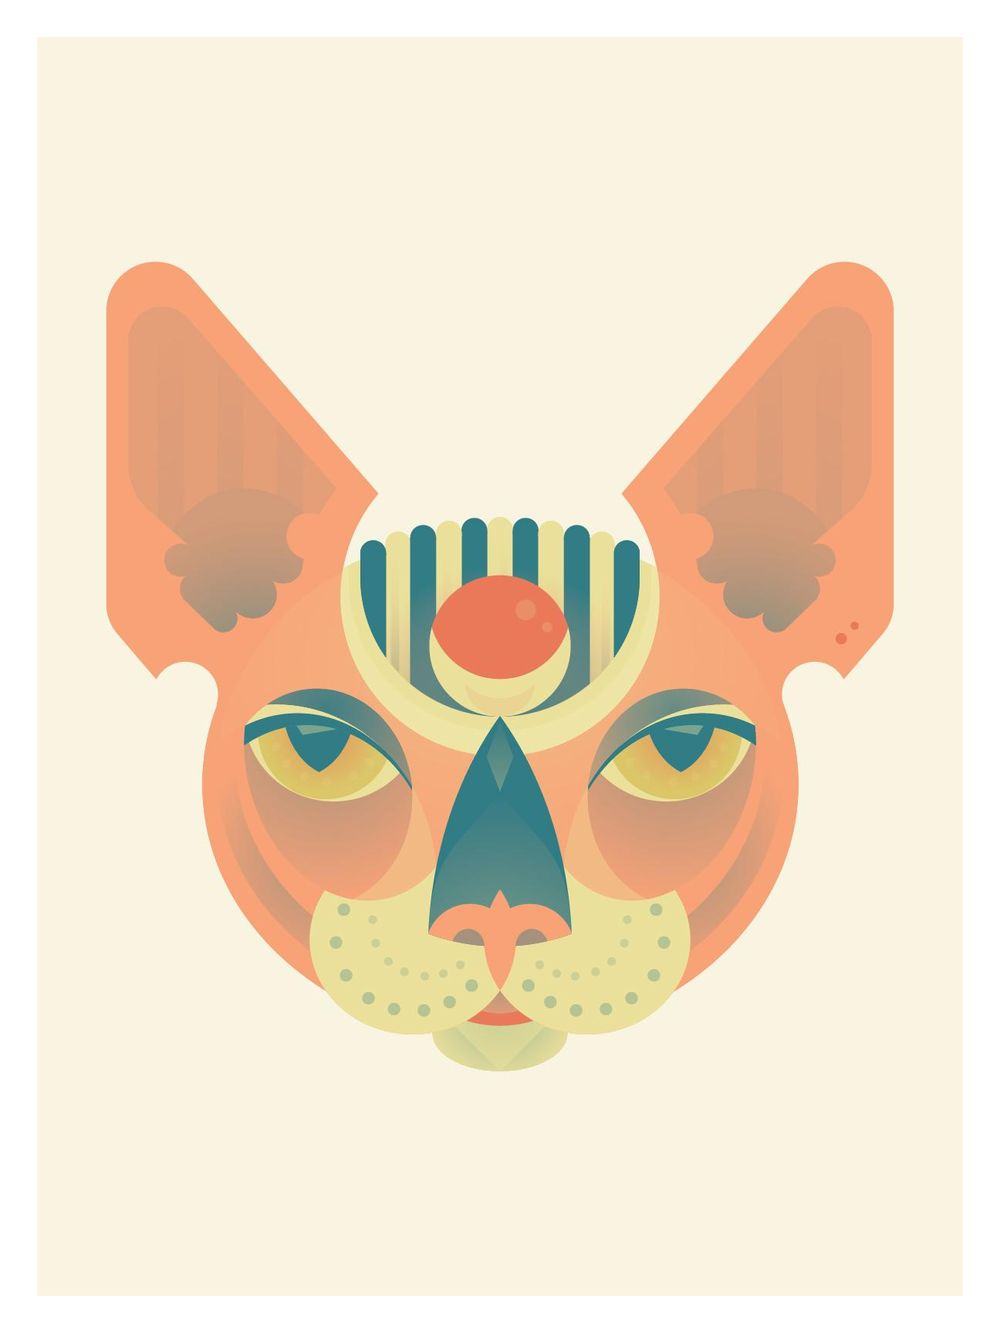 Sphynx head - image 6 - student project